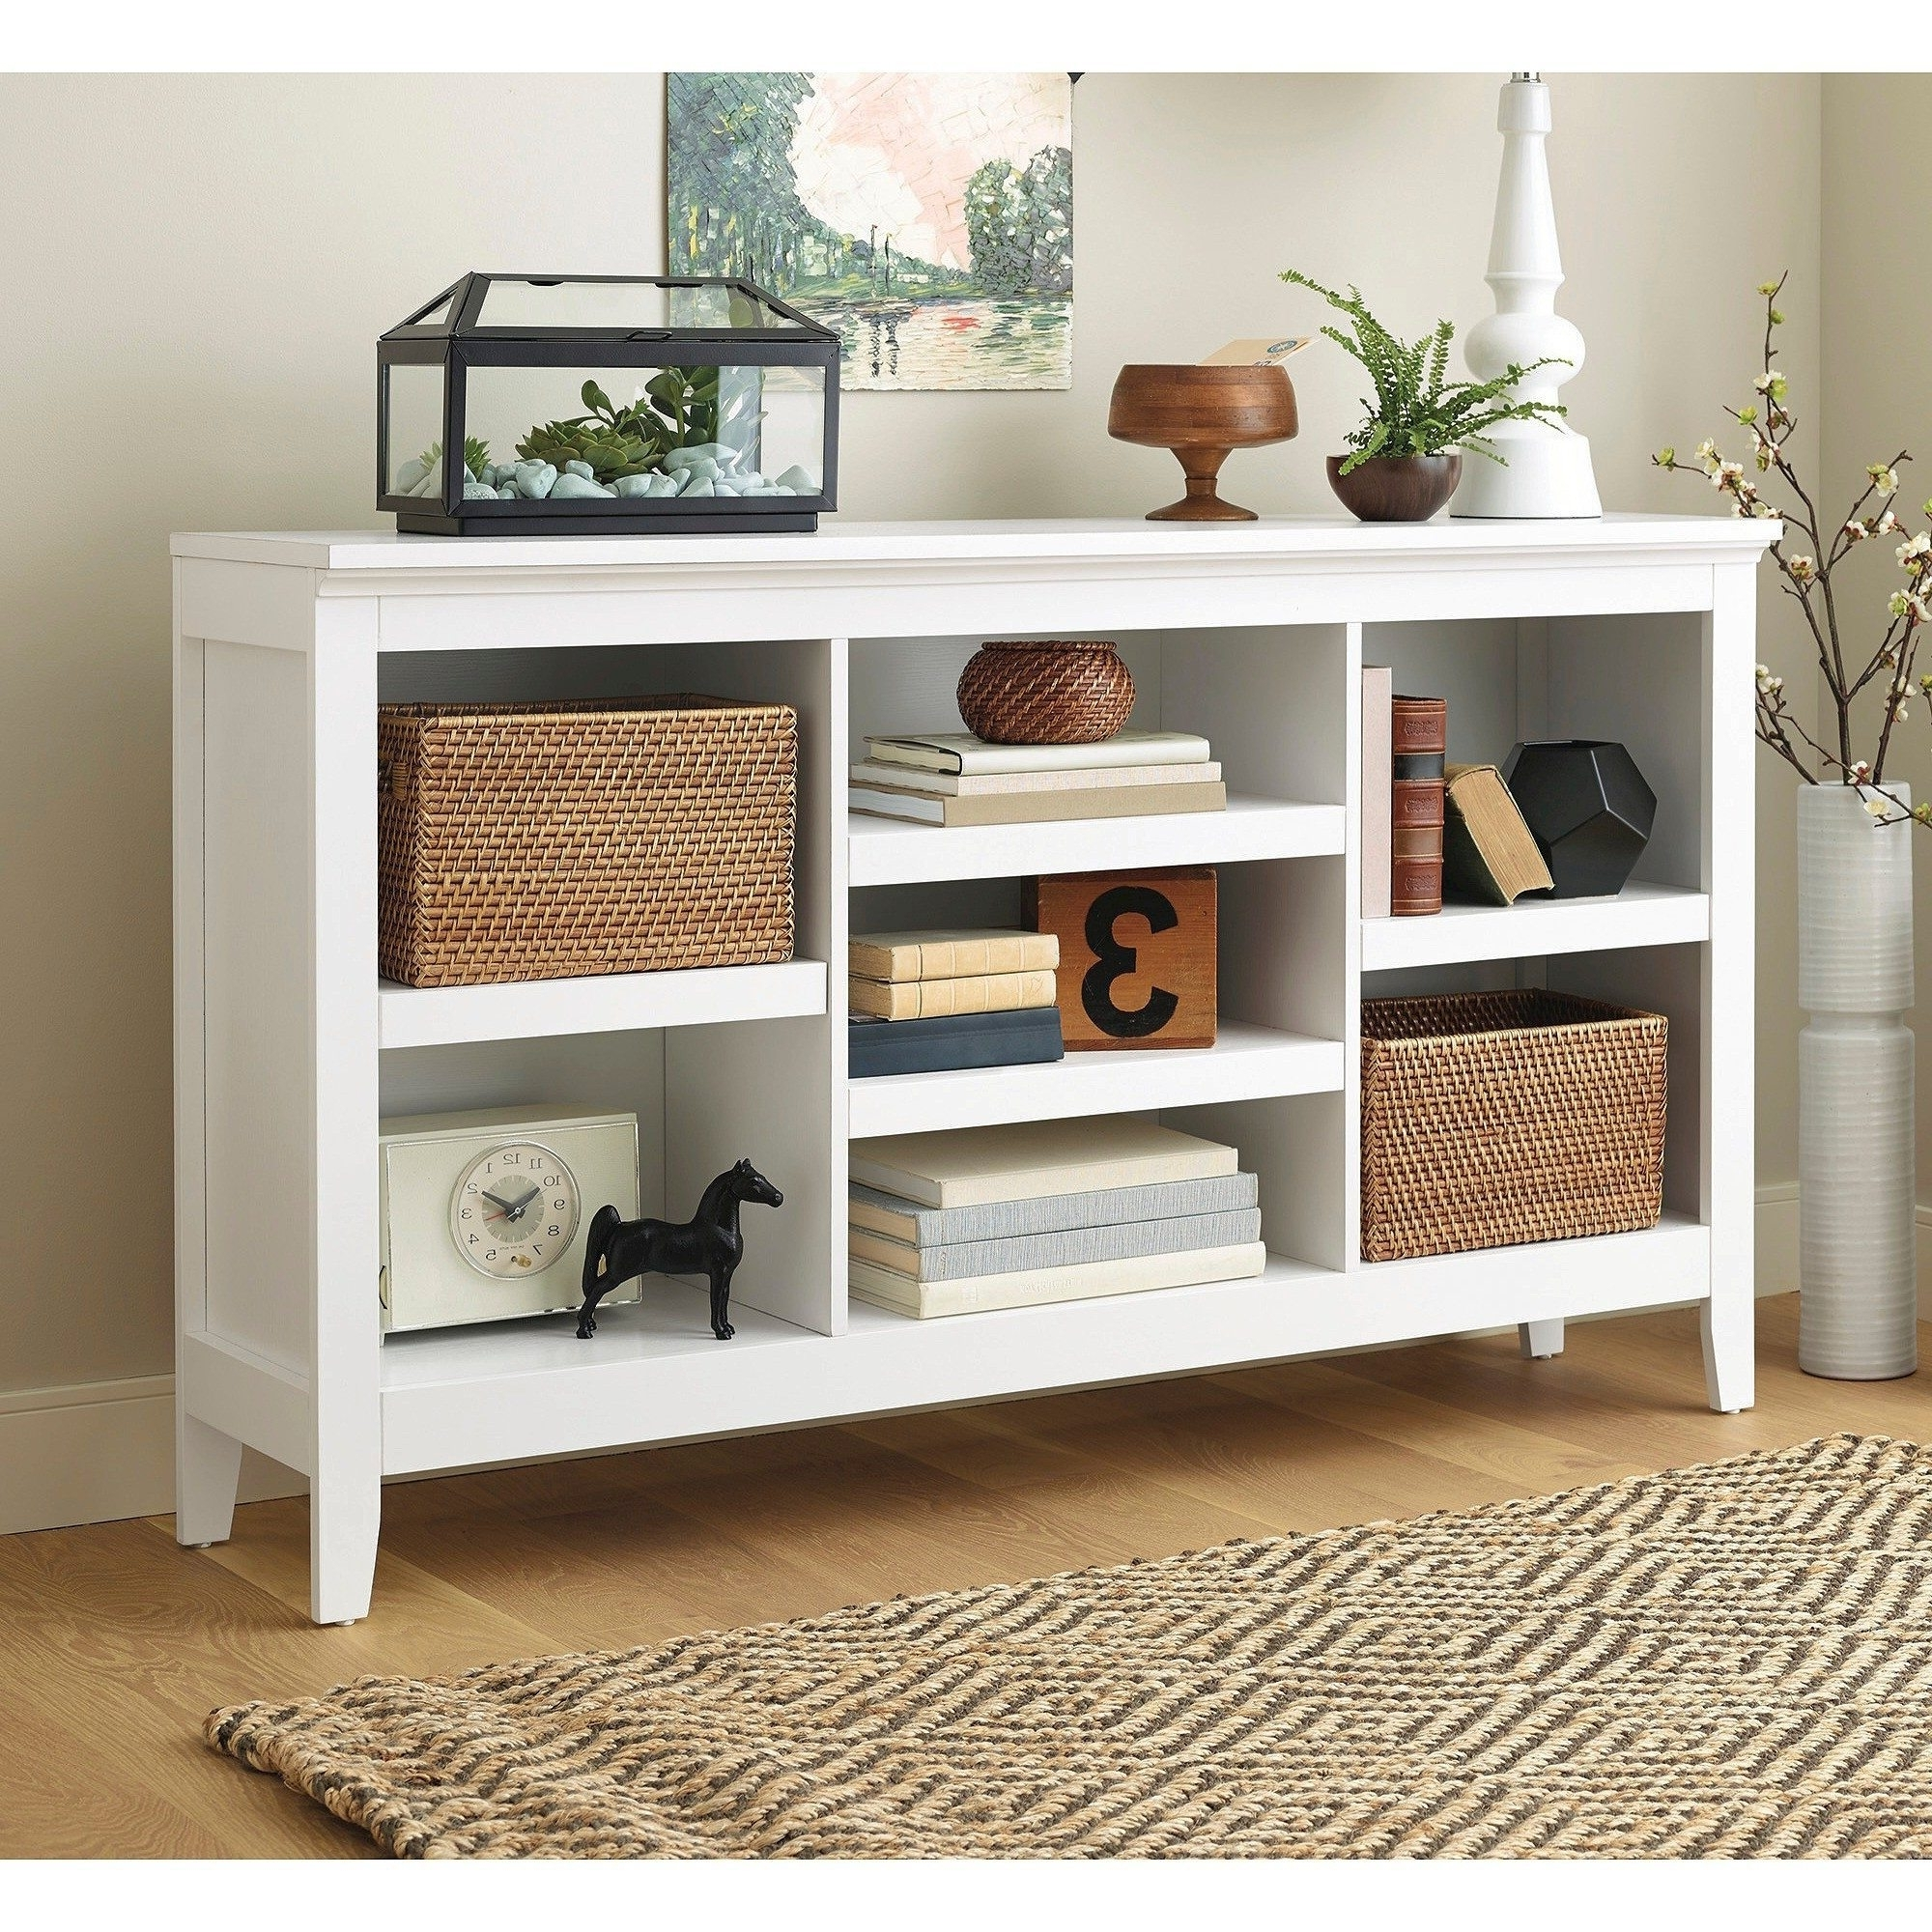 Well Liked Lowes Bookcases With Regard To Astounding Target Bookcase Images Design Inspiration – Tikspor (View 5 of 15)